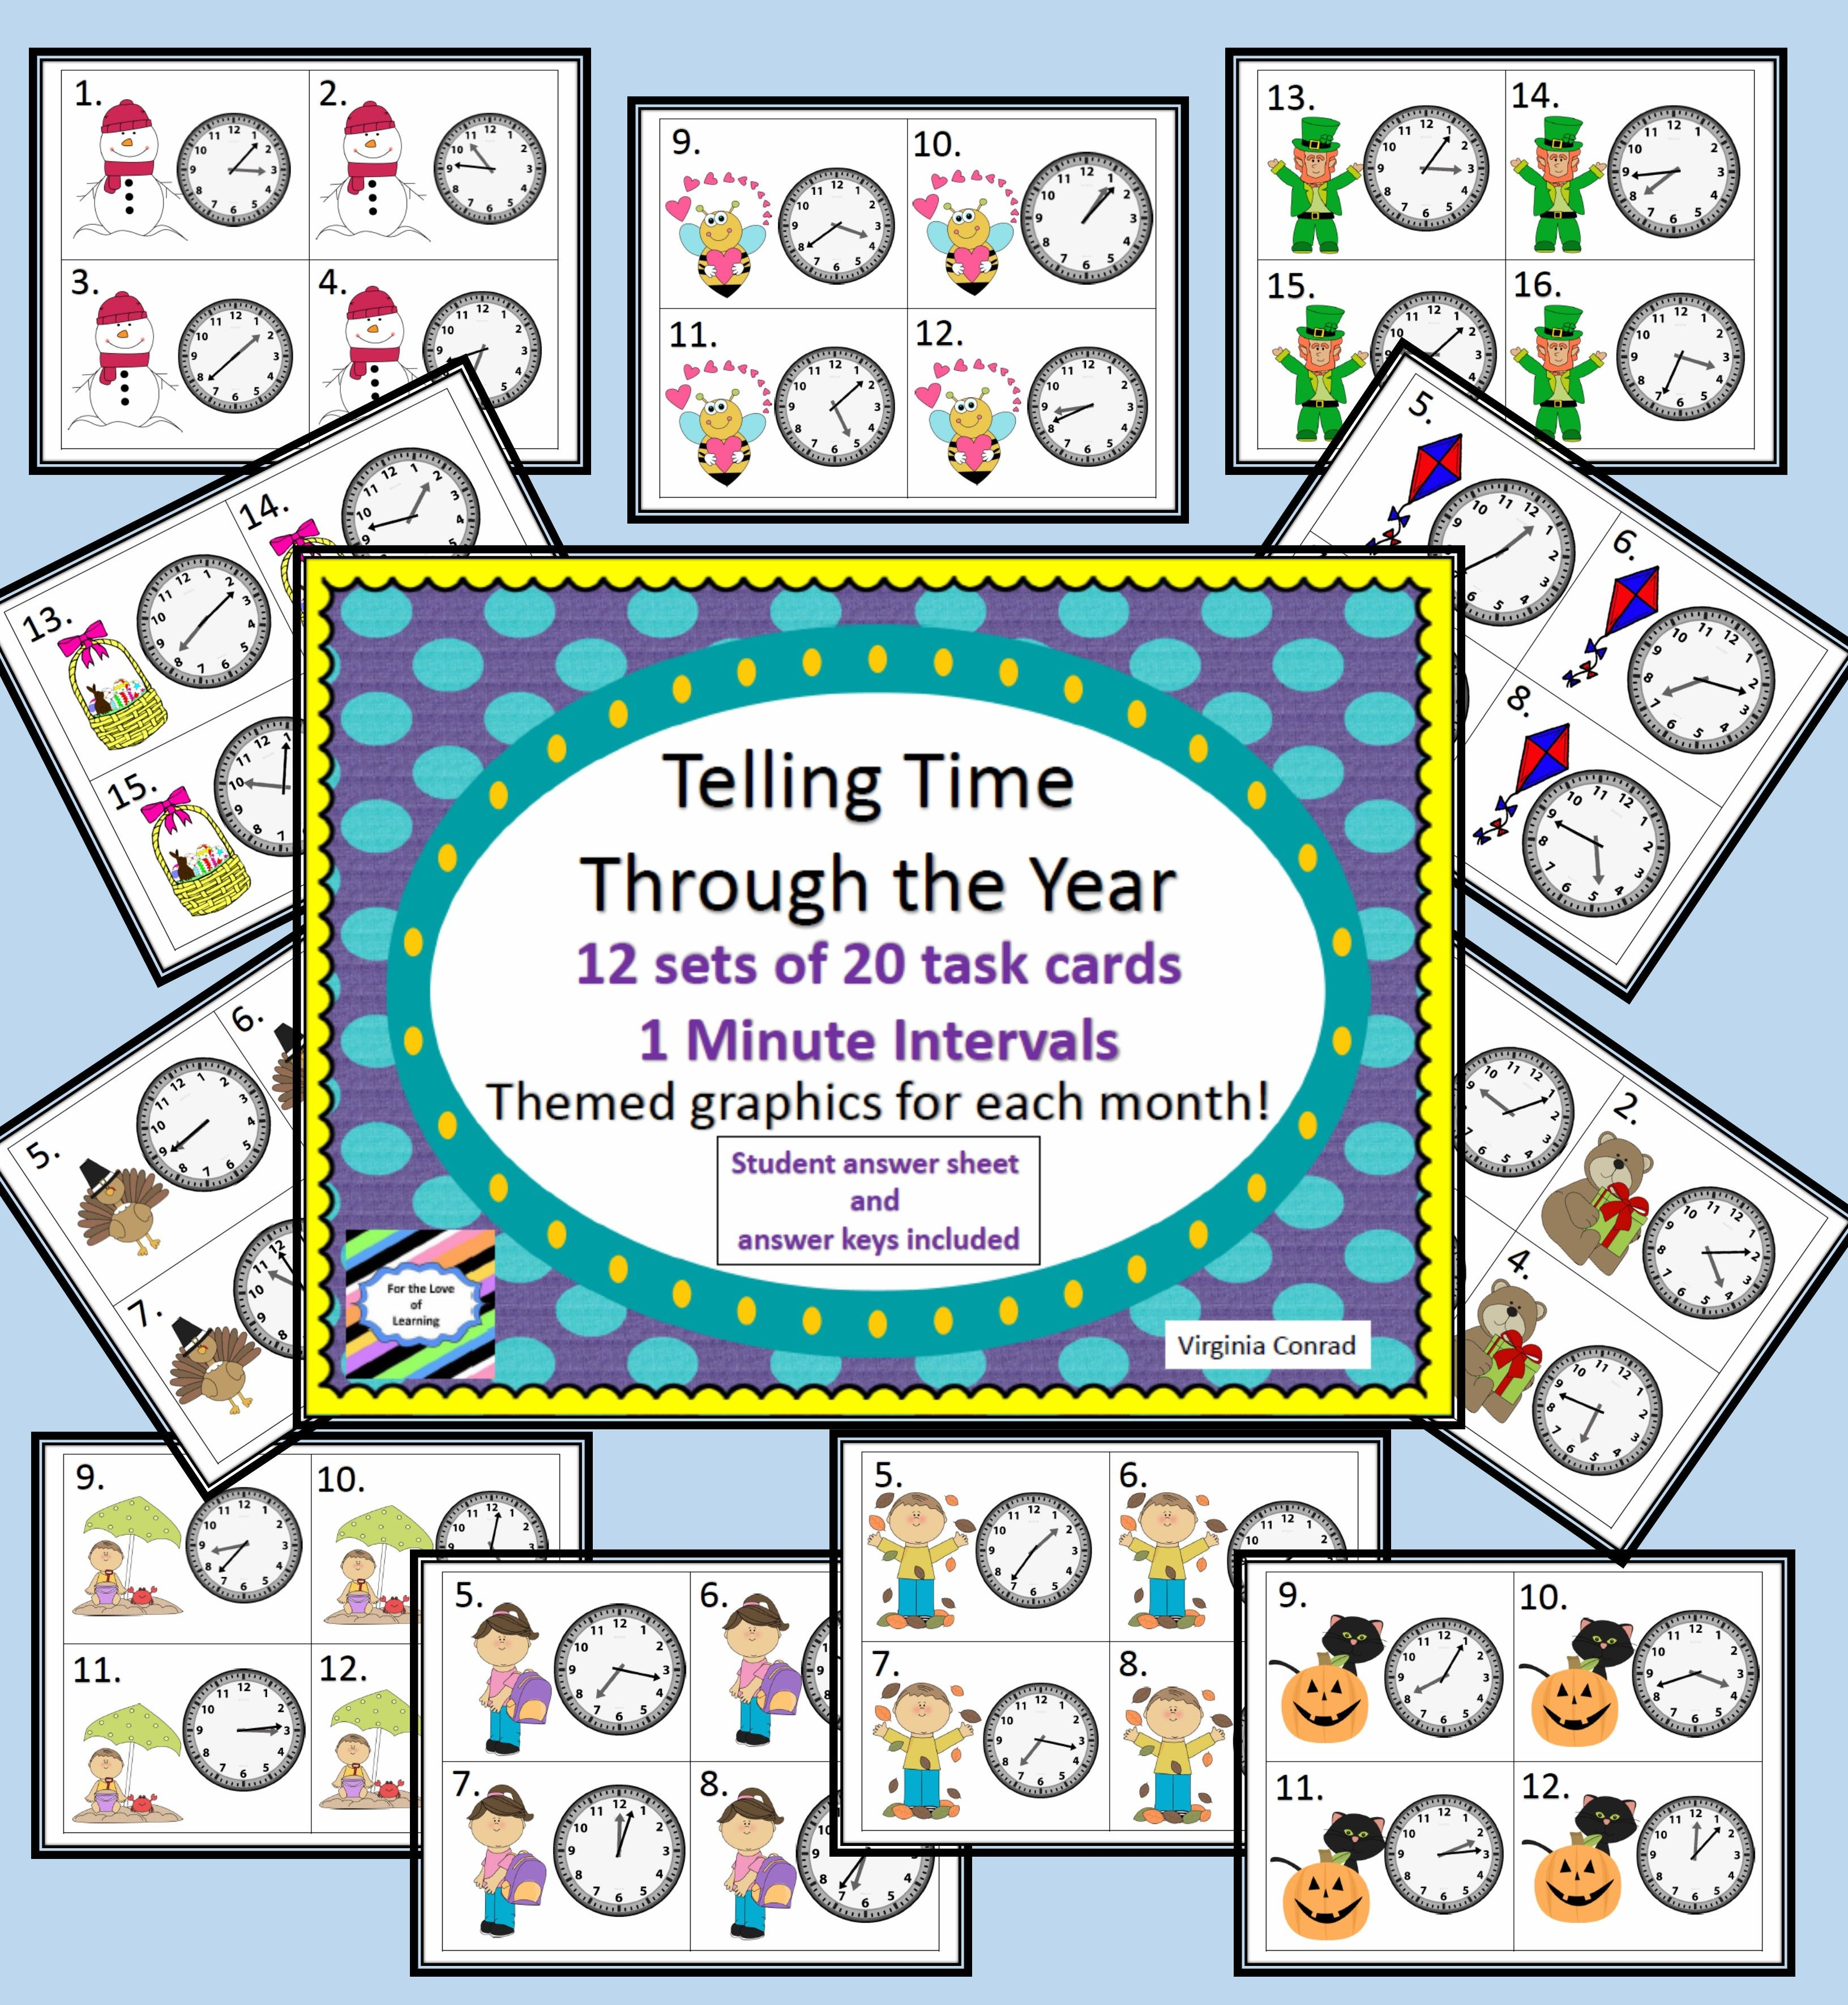 Telling Time Through The Year 1 Minute Intervals 12